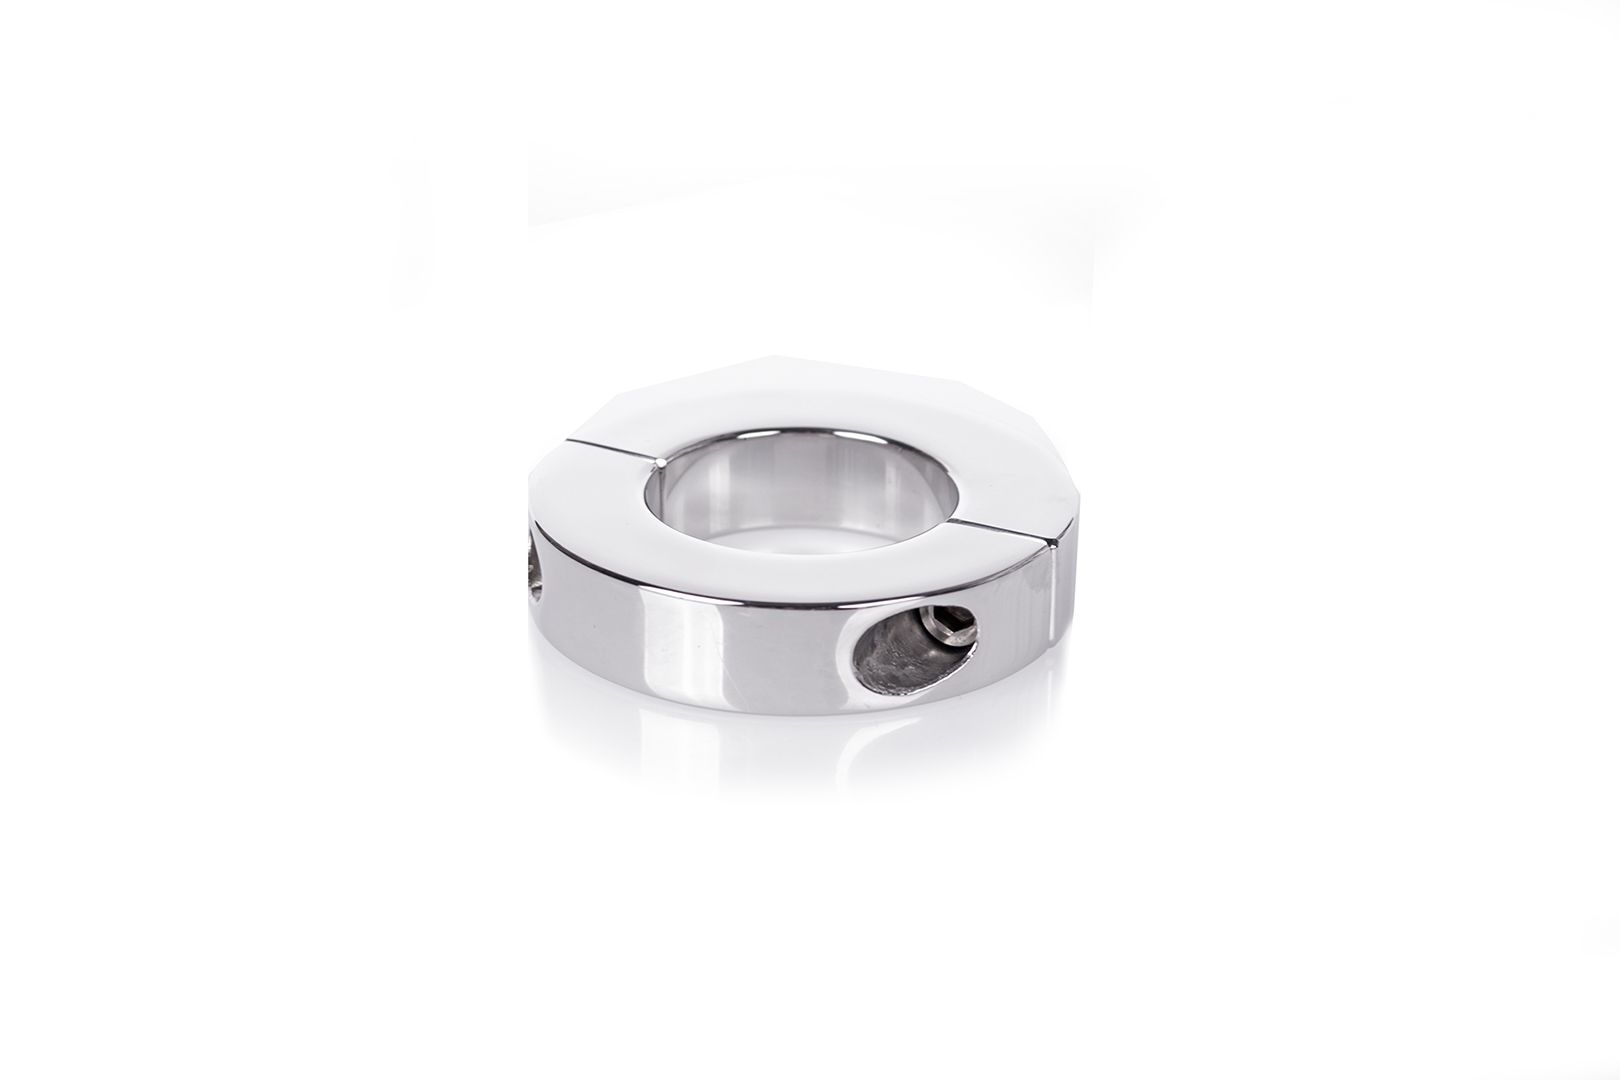 Image of Ball Weight 38 MM - RVS